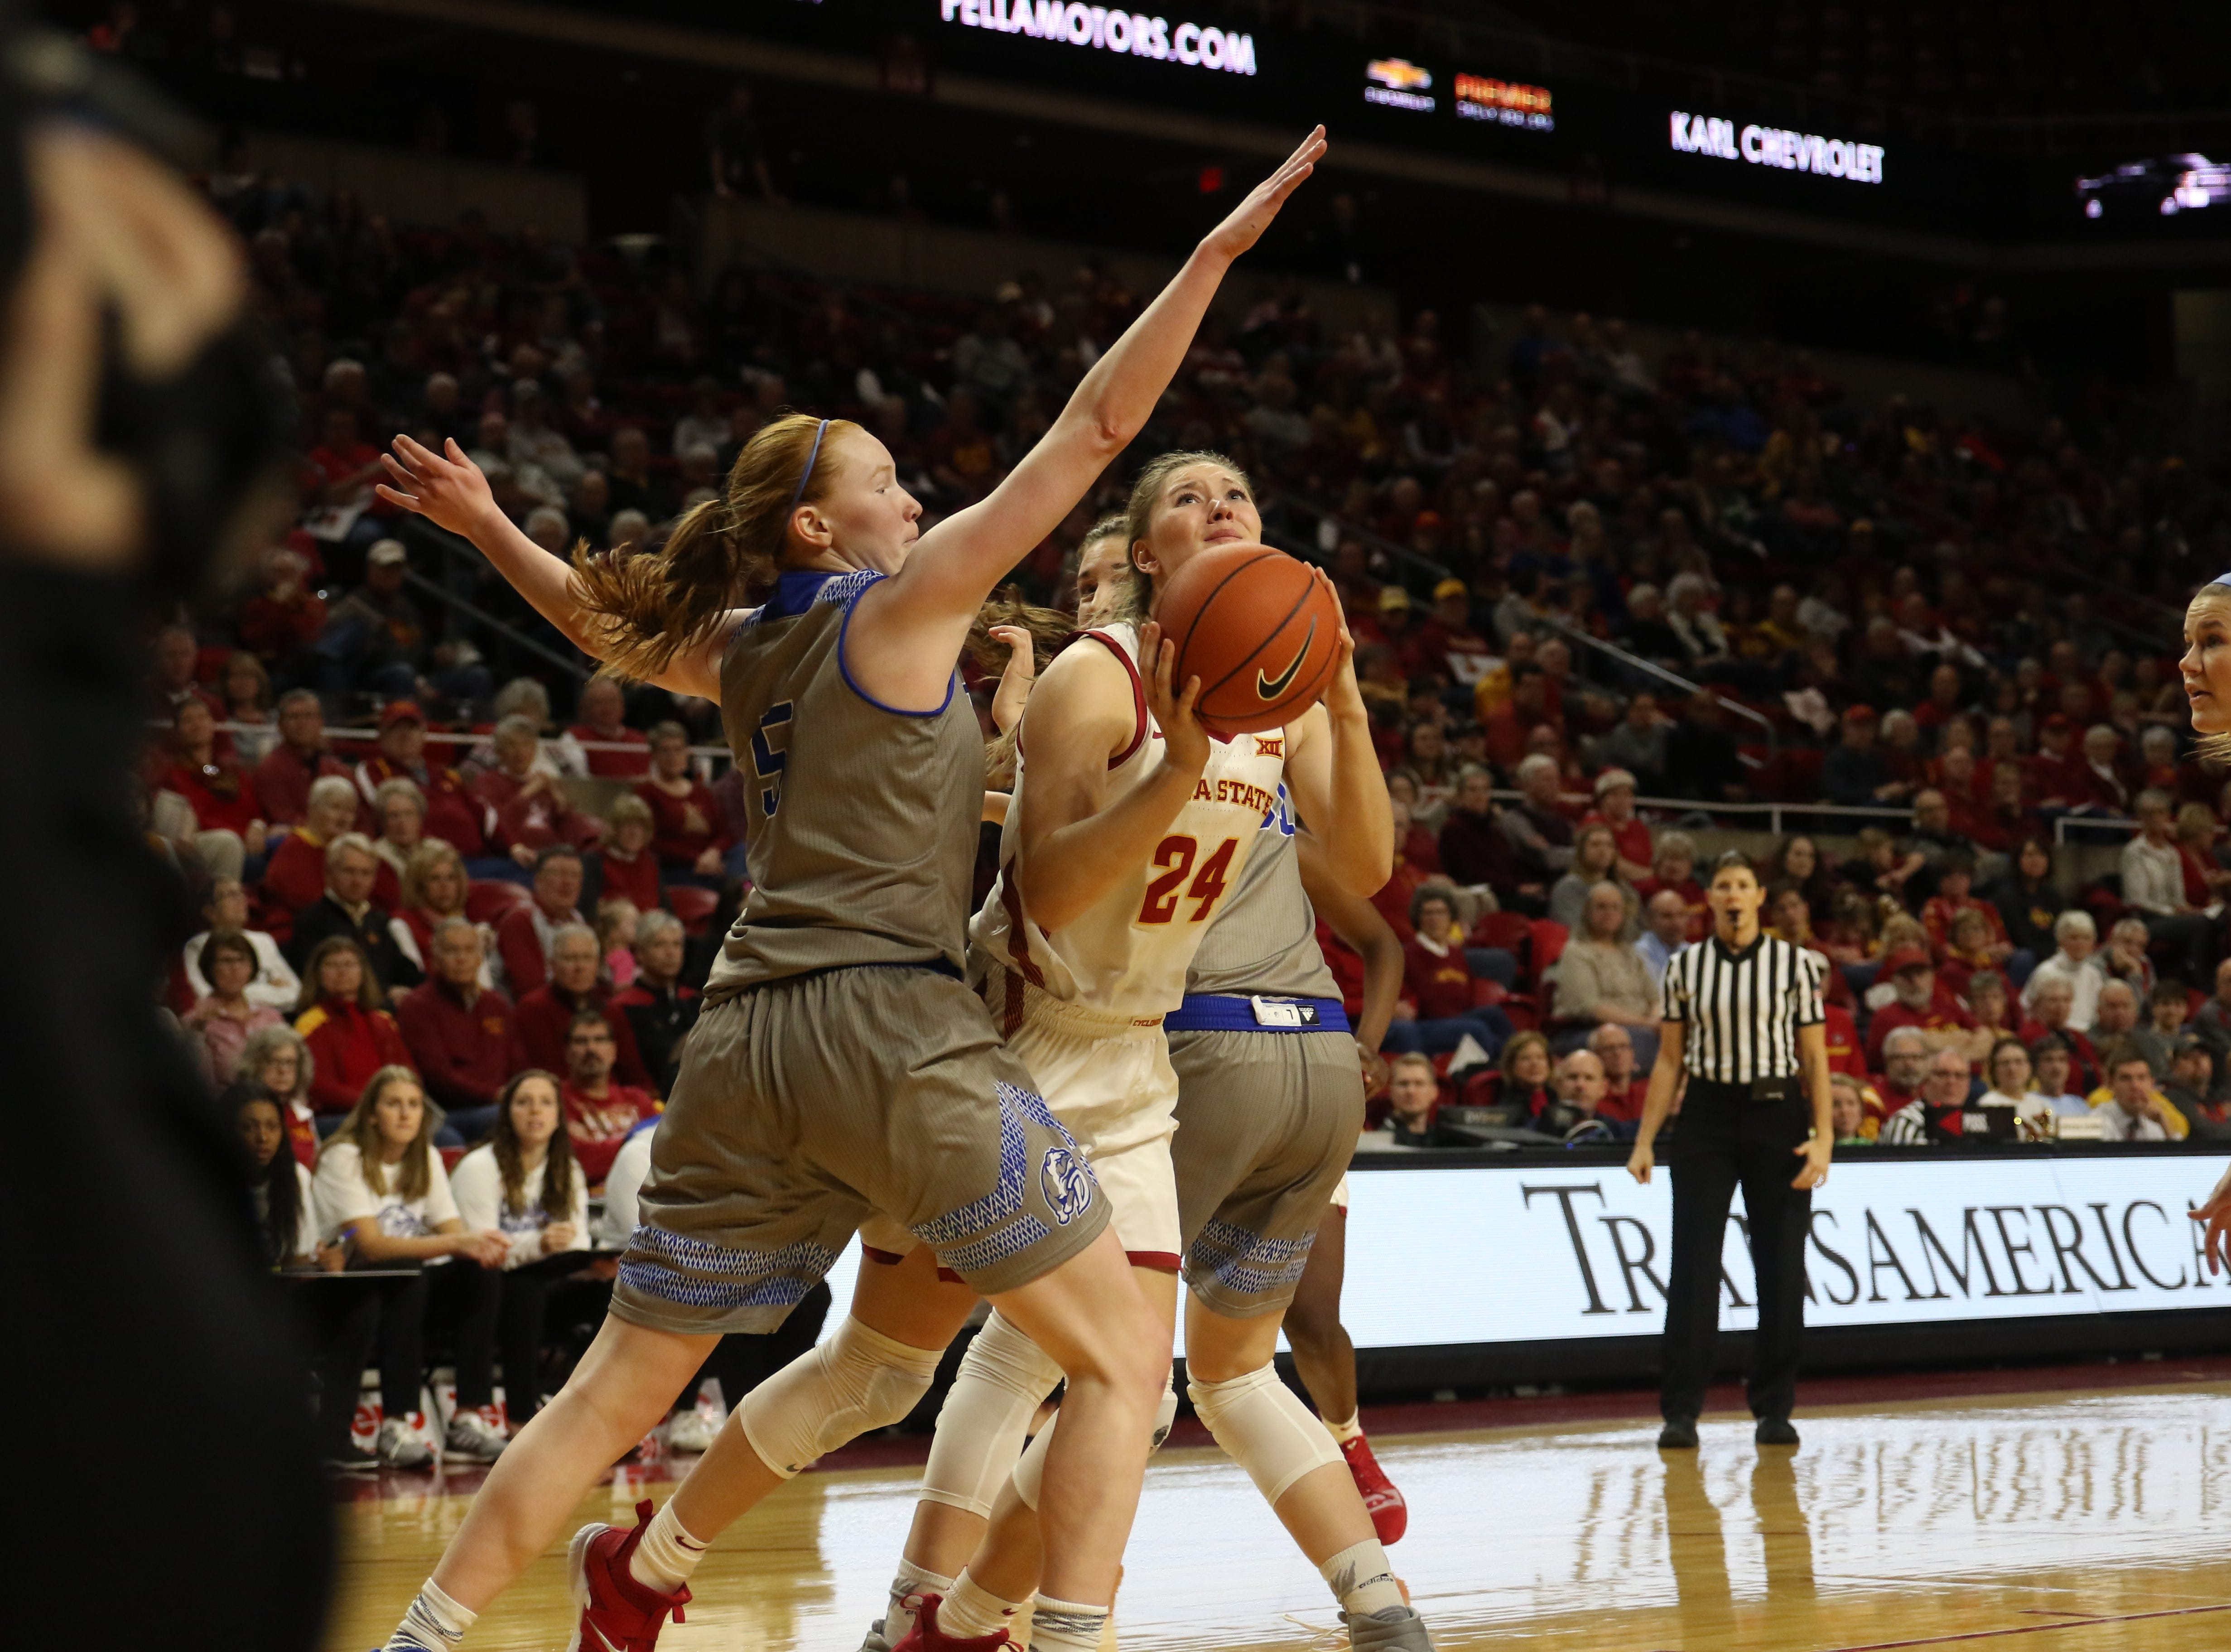 Iowa State freshman Ashley Joens attempts a shot in traffic during the Cyclones 86-81 win over Drake on Sunday.